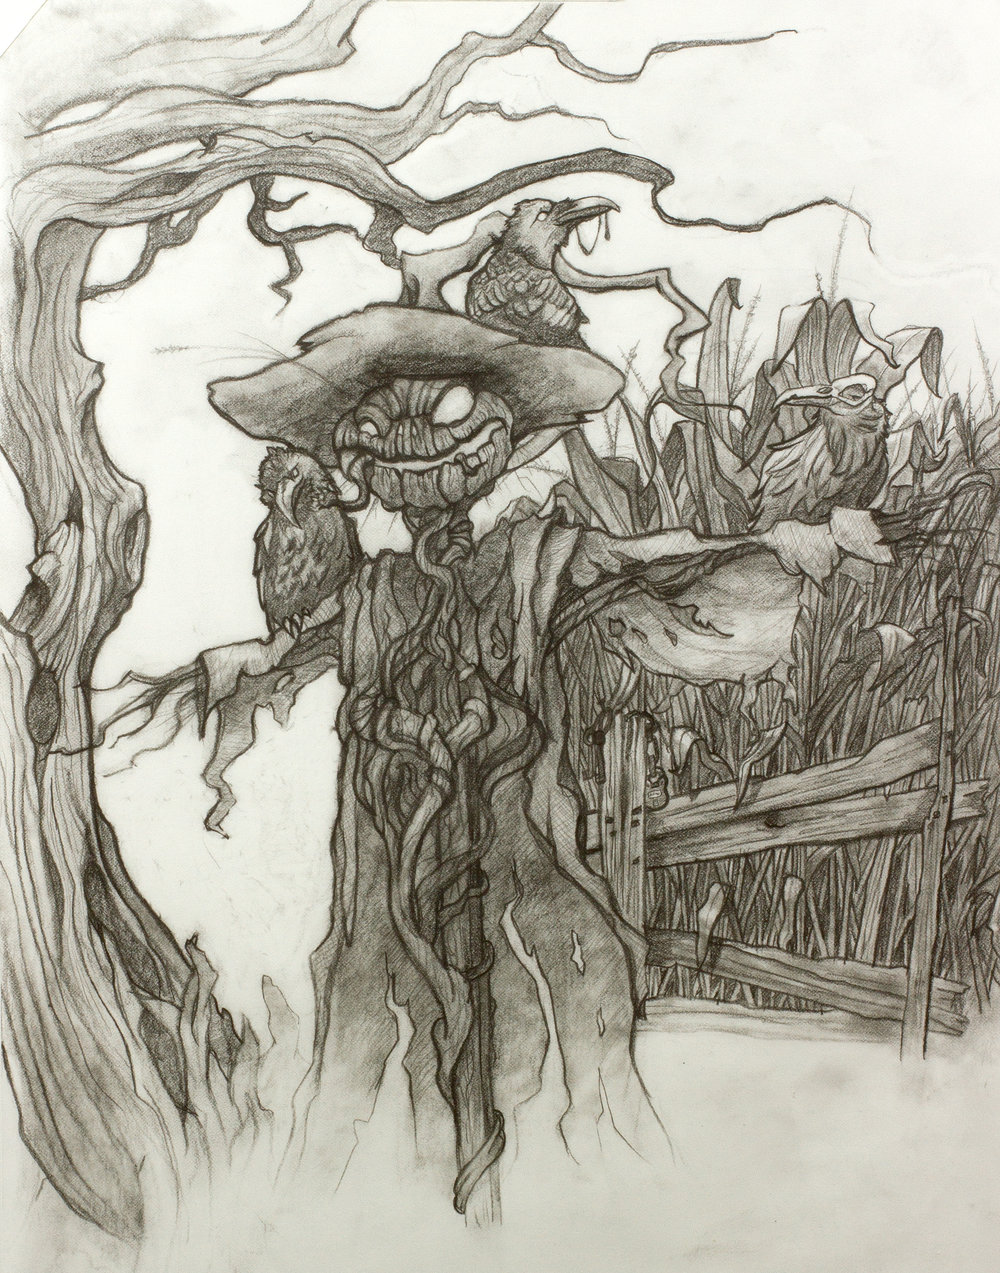 Original drawing for Field of Screams